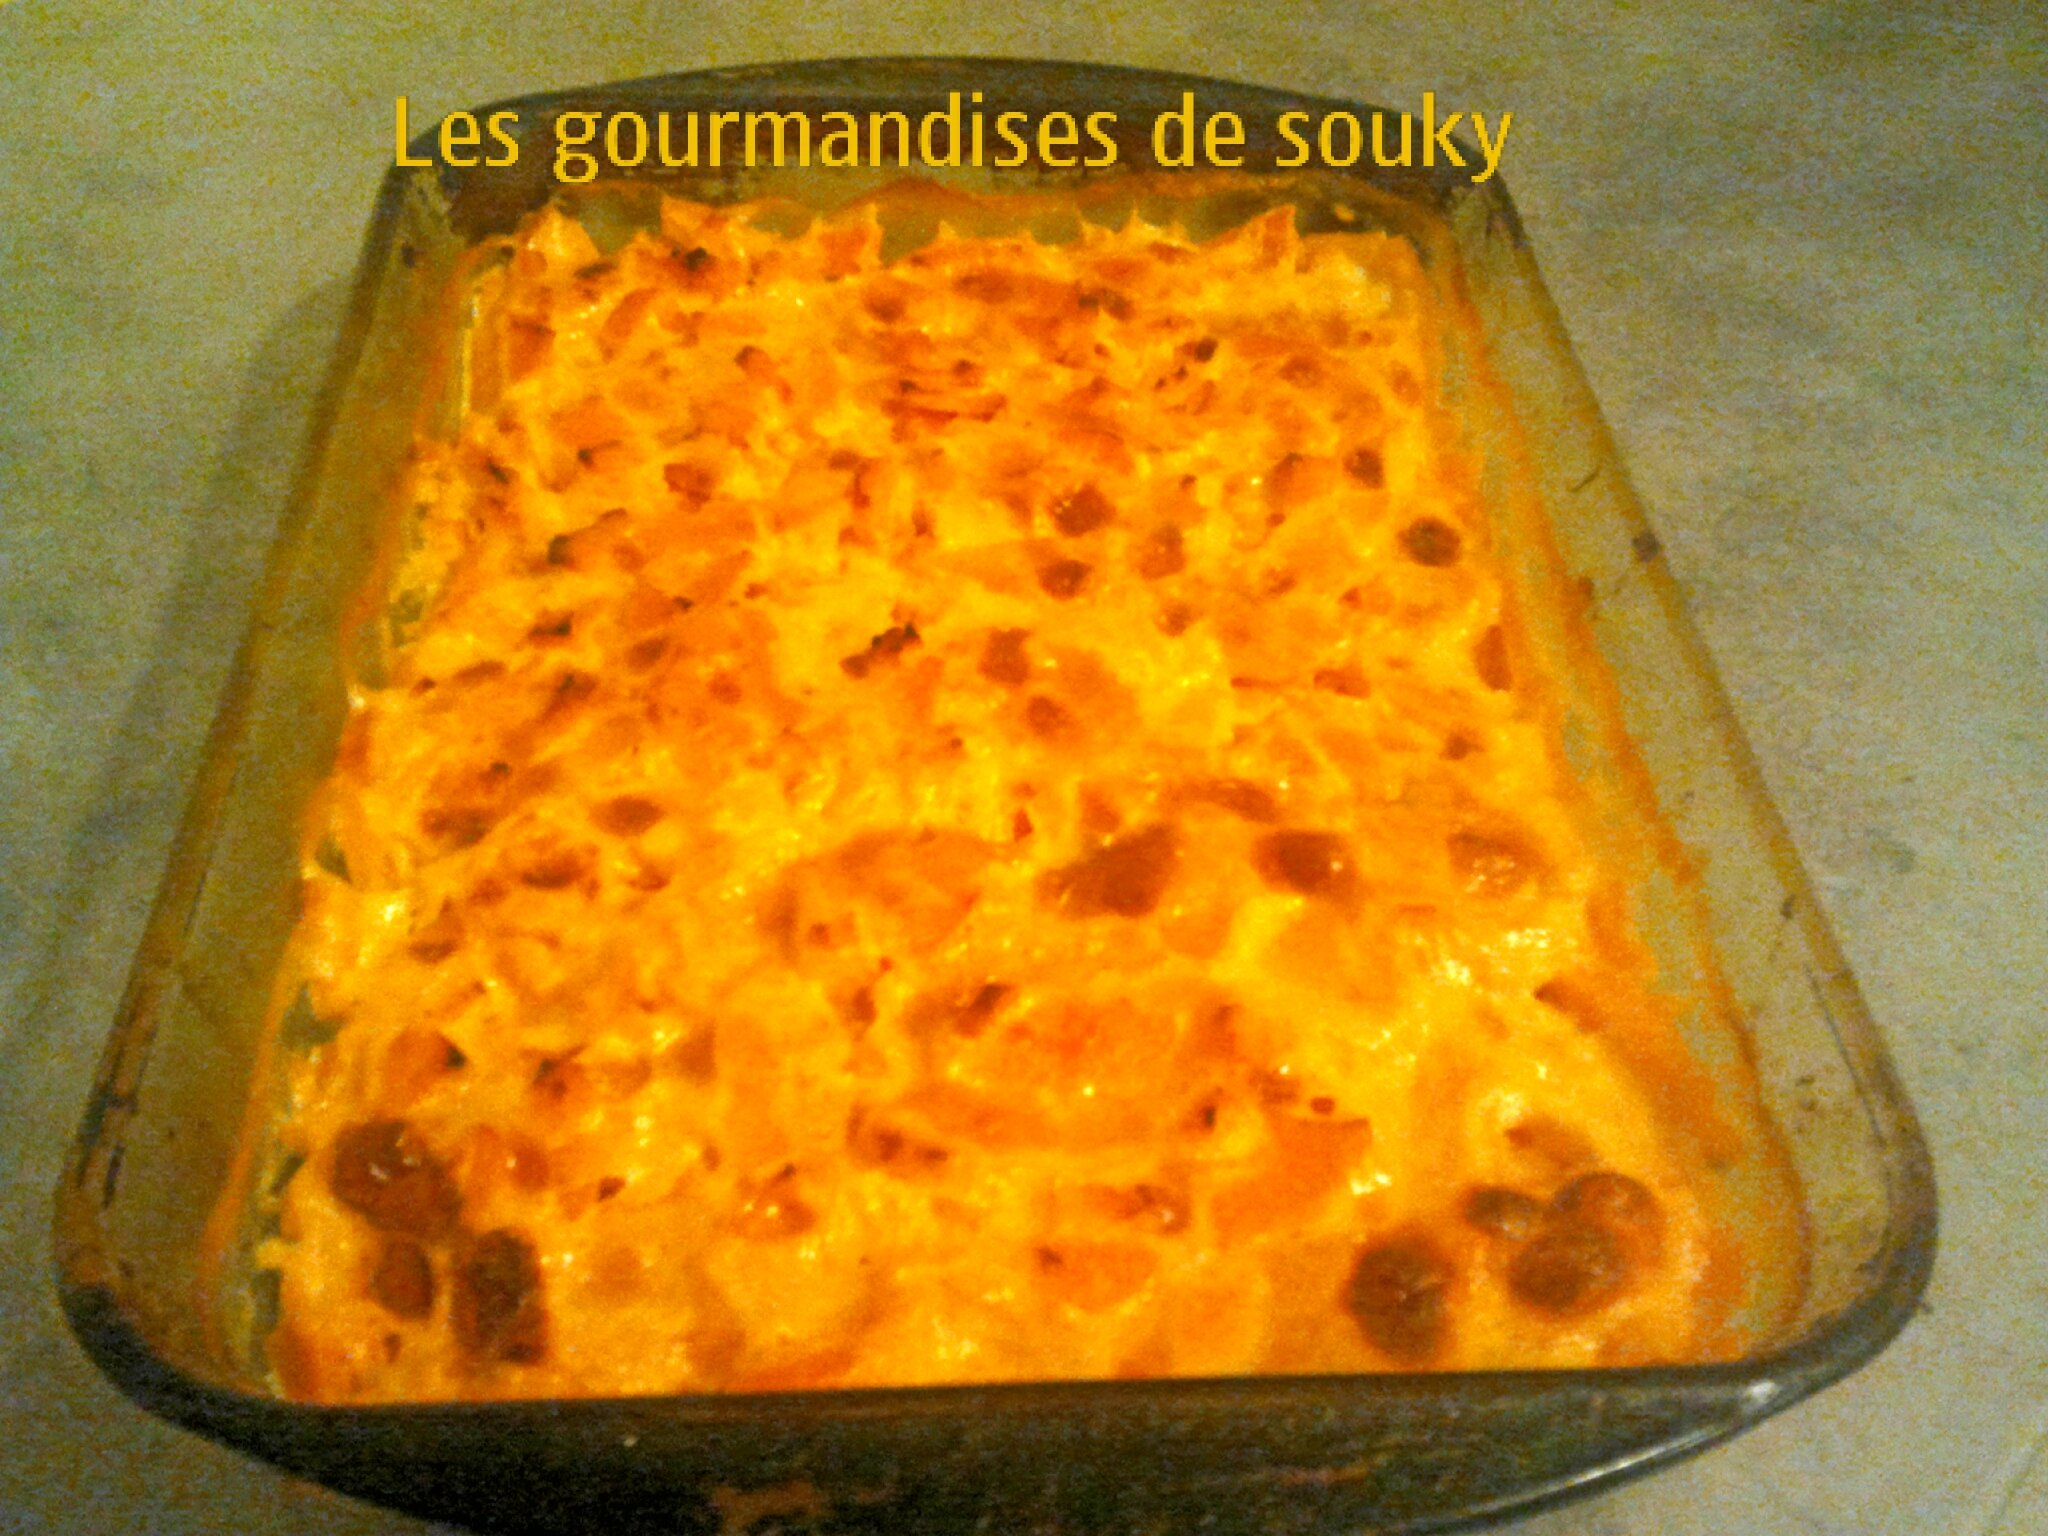 gratin dauphinois de patate douce cr me aromatis au curry et miel les gourmandises de souky. Black Bedroom Furniture Sets. Home Design Ideas